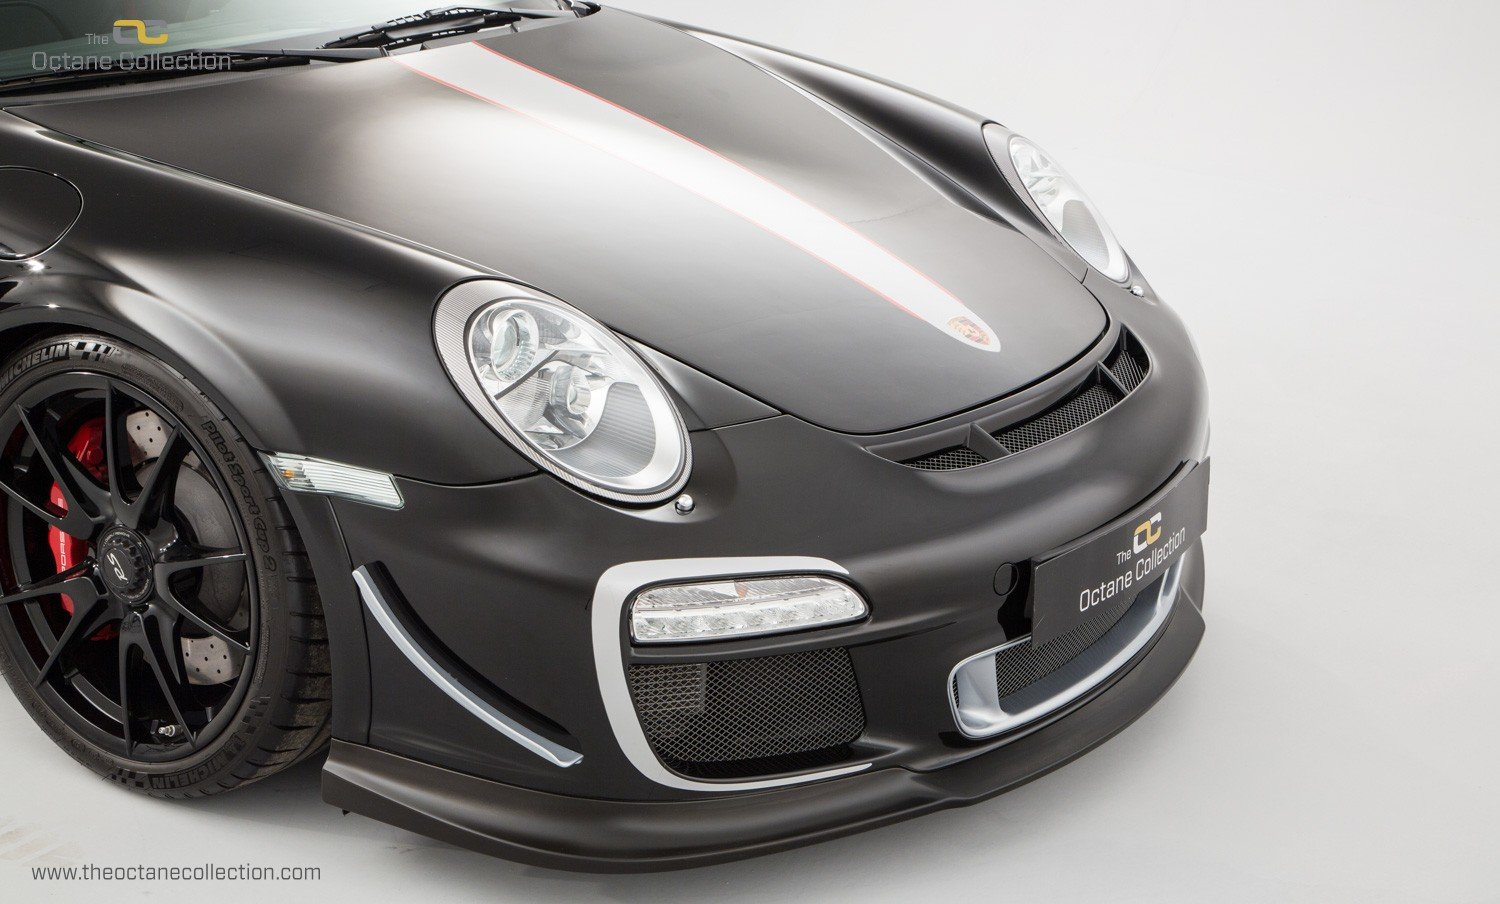 2011 PORSCHE (997) 911 GT3 RS 4L // ORIGINAL PAINT // 6K MILES  For Sale (picture 5 of 24)